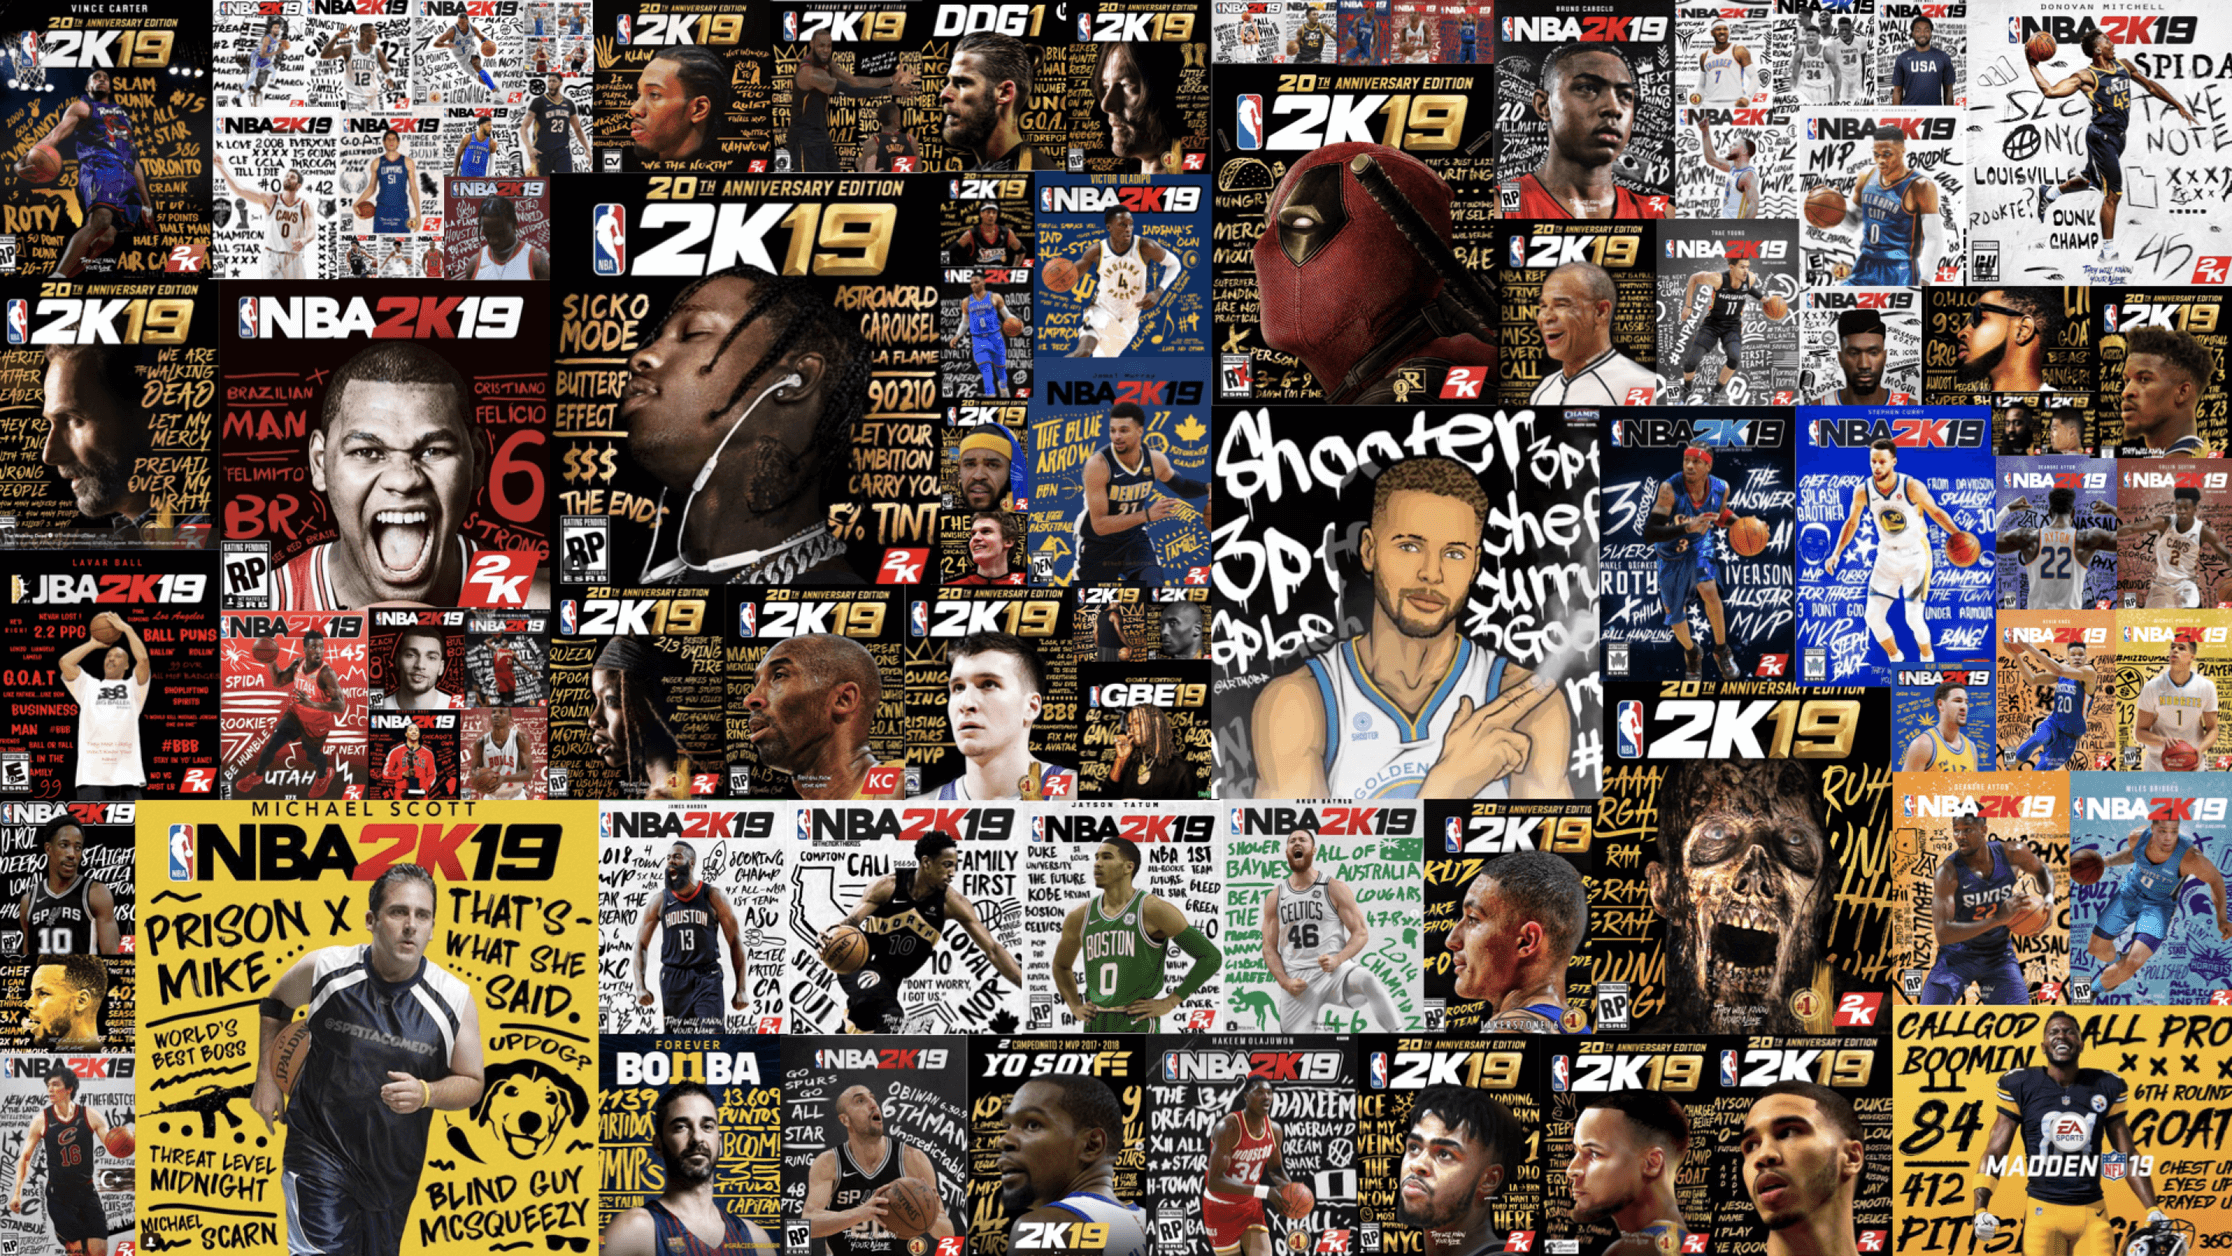 2kcover.png